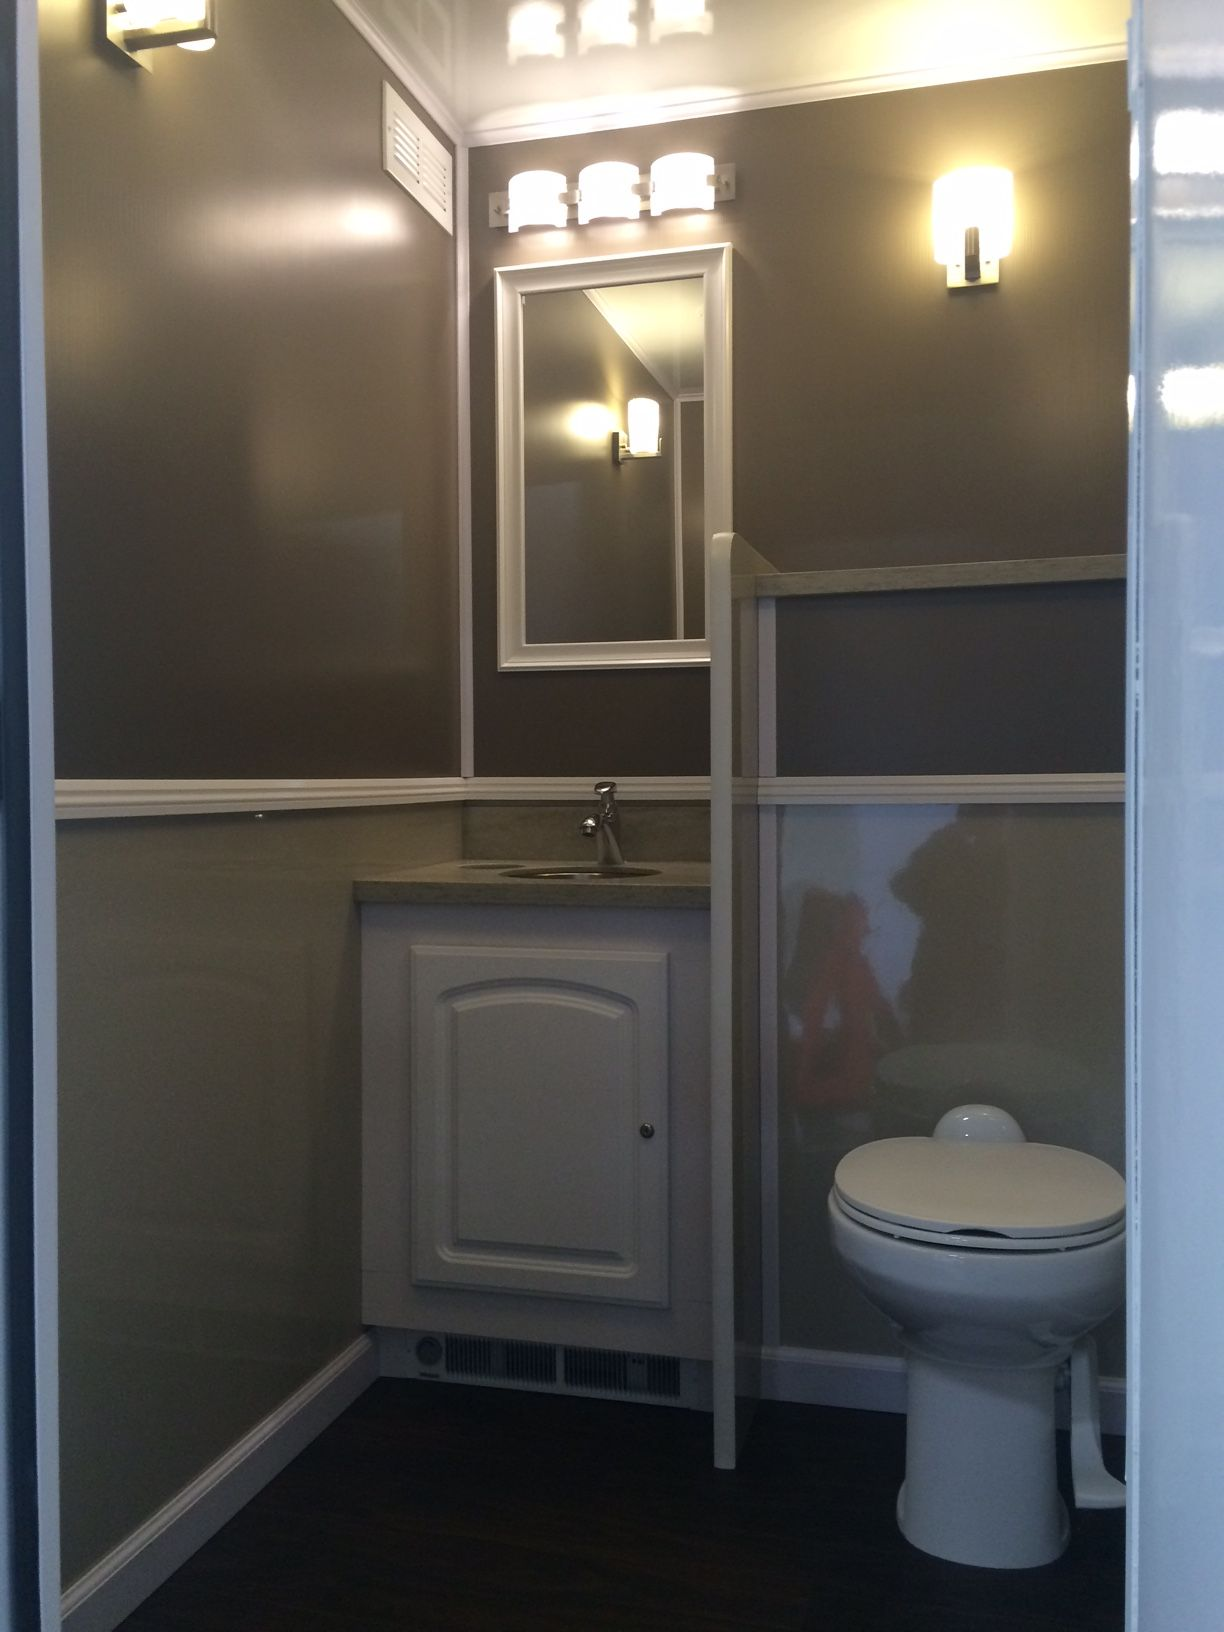 Bathroom Trailer Rentals Greenwood Indianapolis - Bathroom trailer rentals